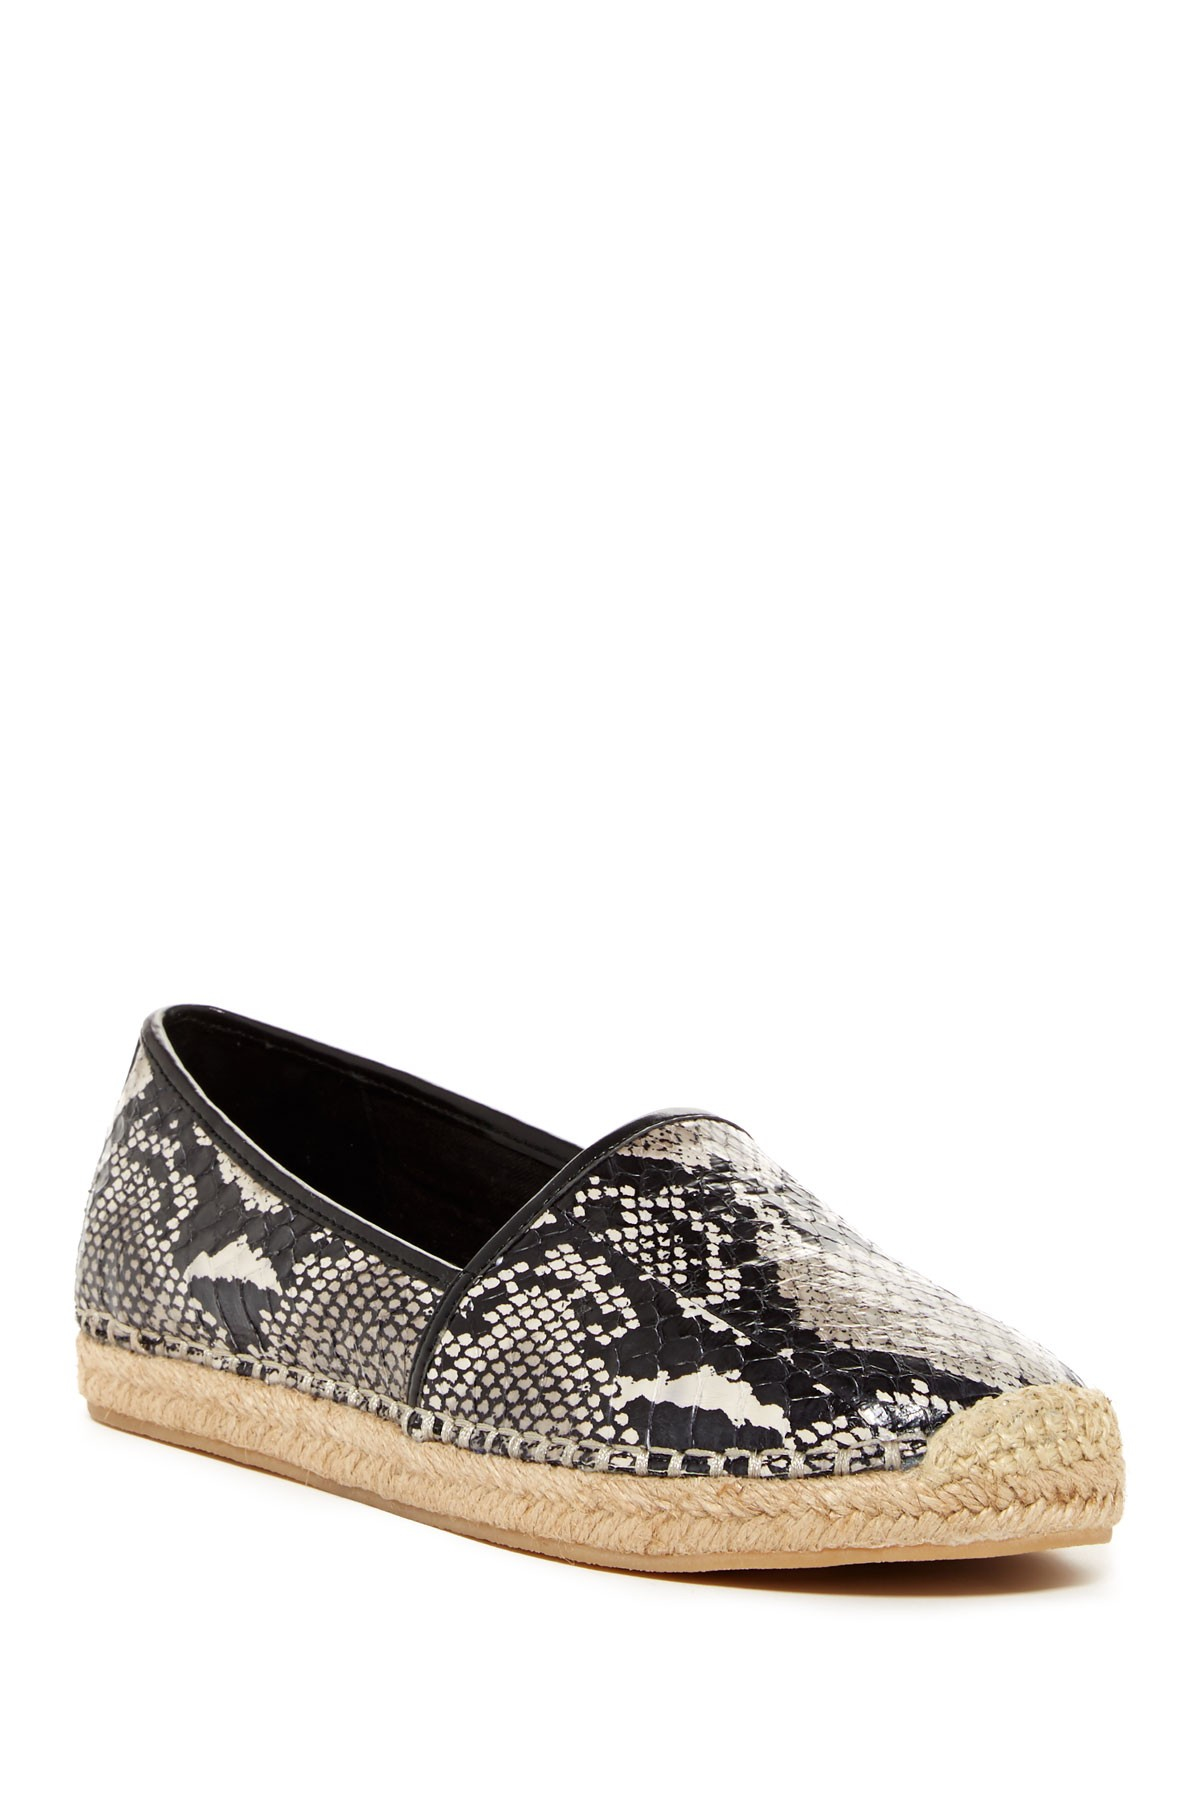 Lyst B Brian Atwood Exact Snake Embossed Espadrille Flat